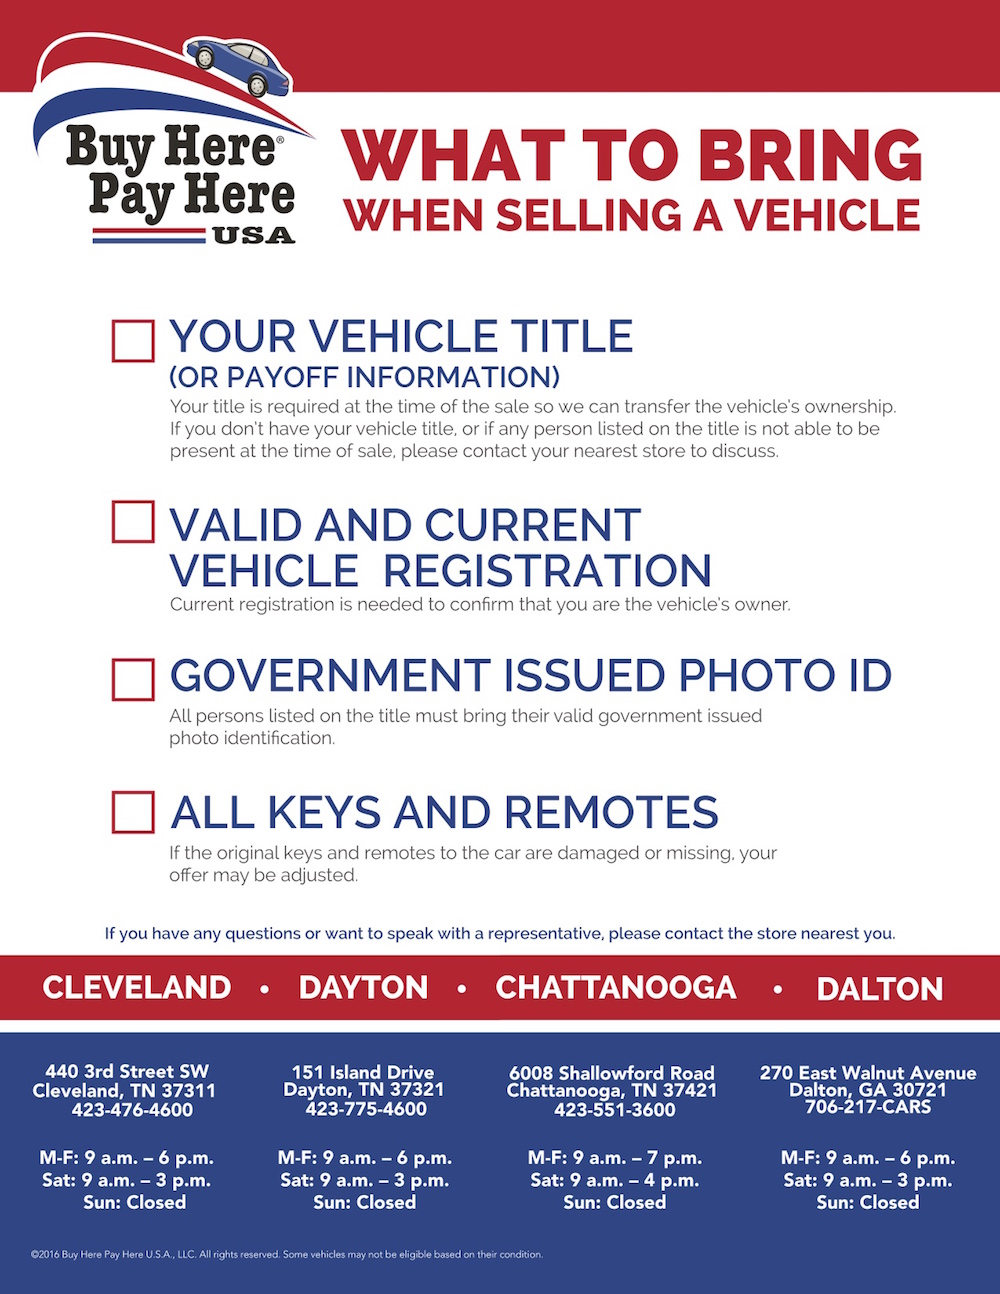 how to sell your car to a dealership - buy here pay here usa